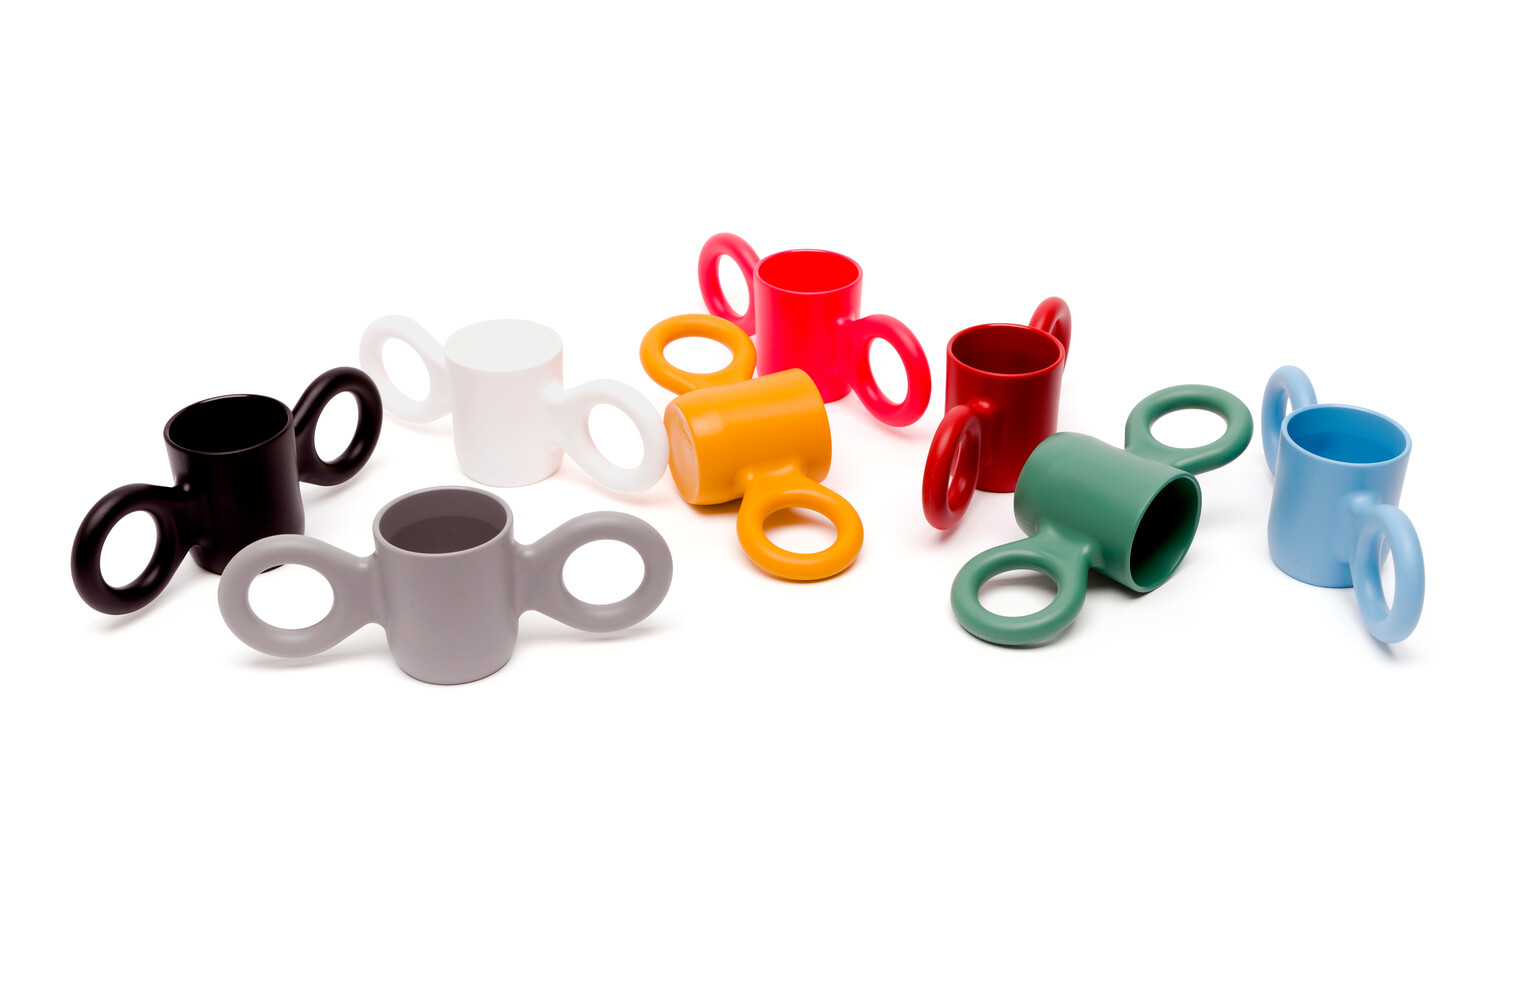 Gispen Dombo cup collection